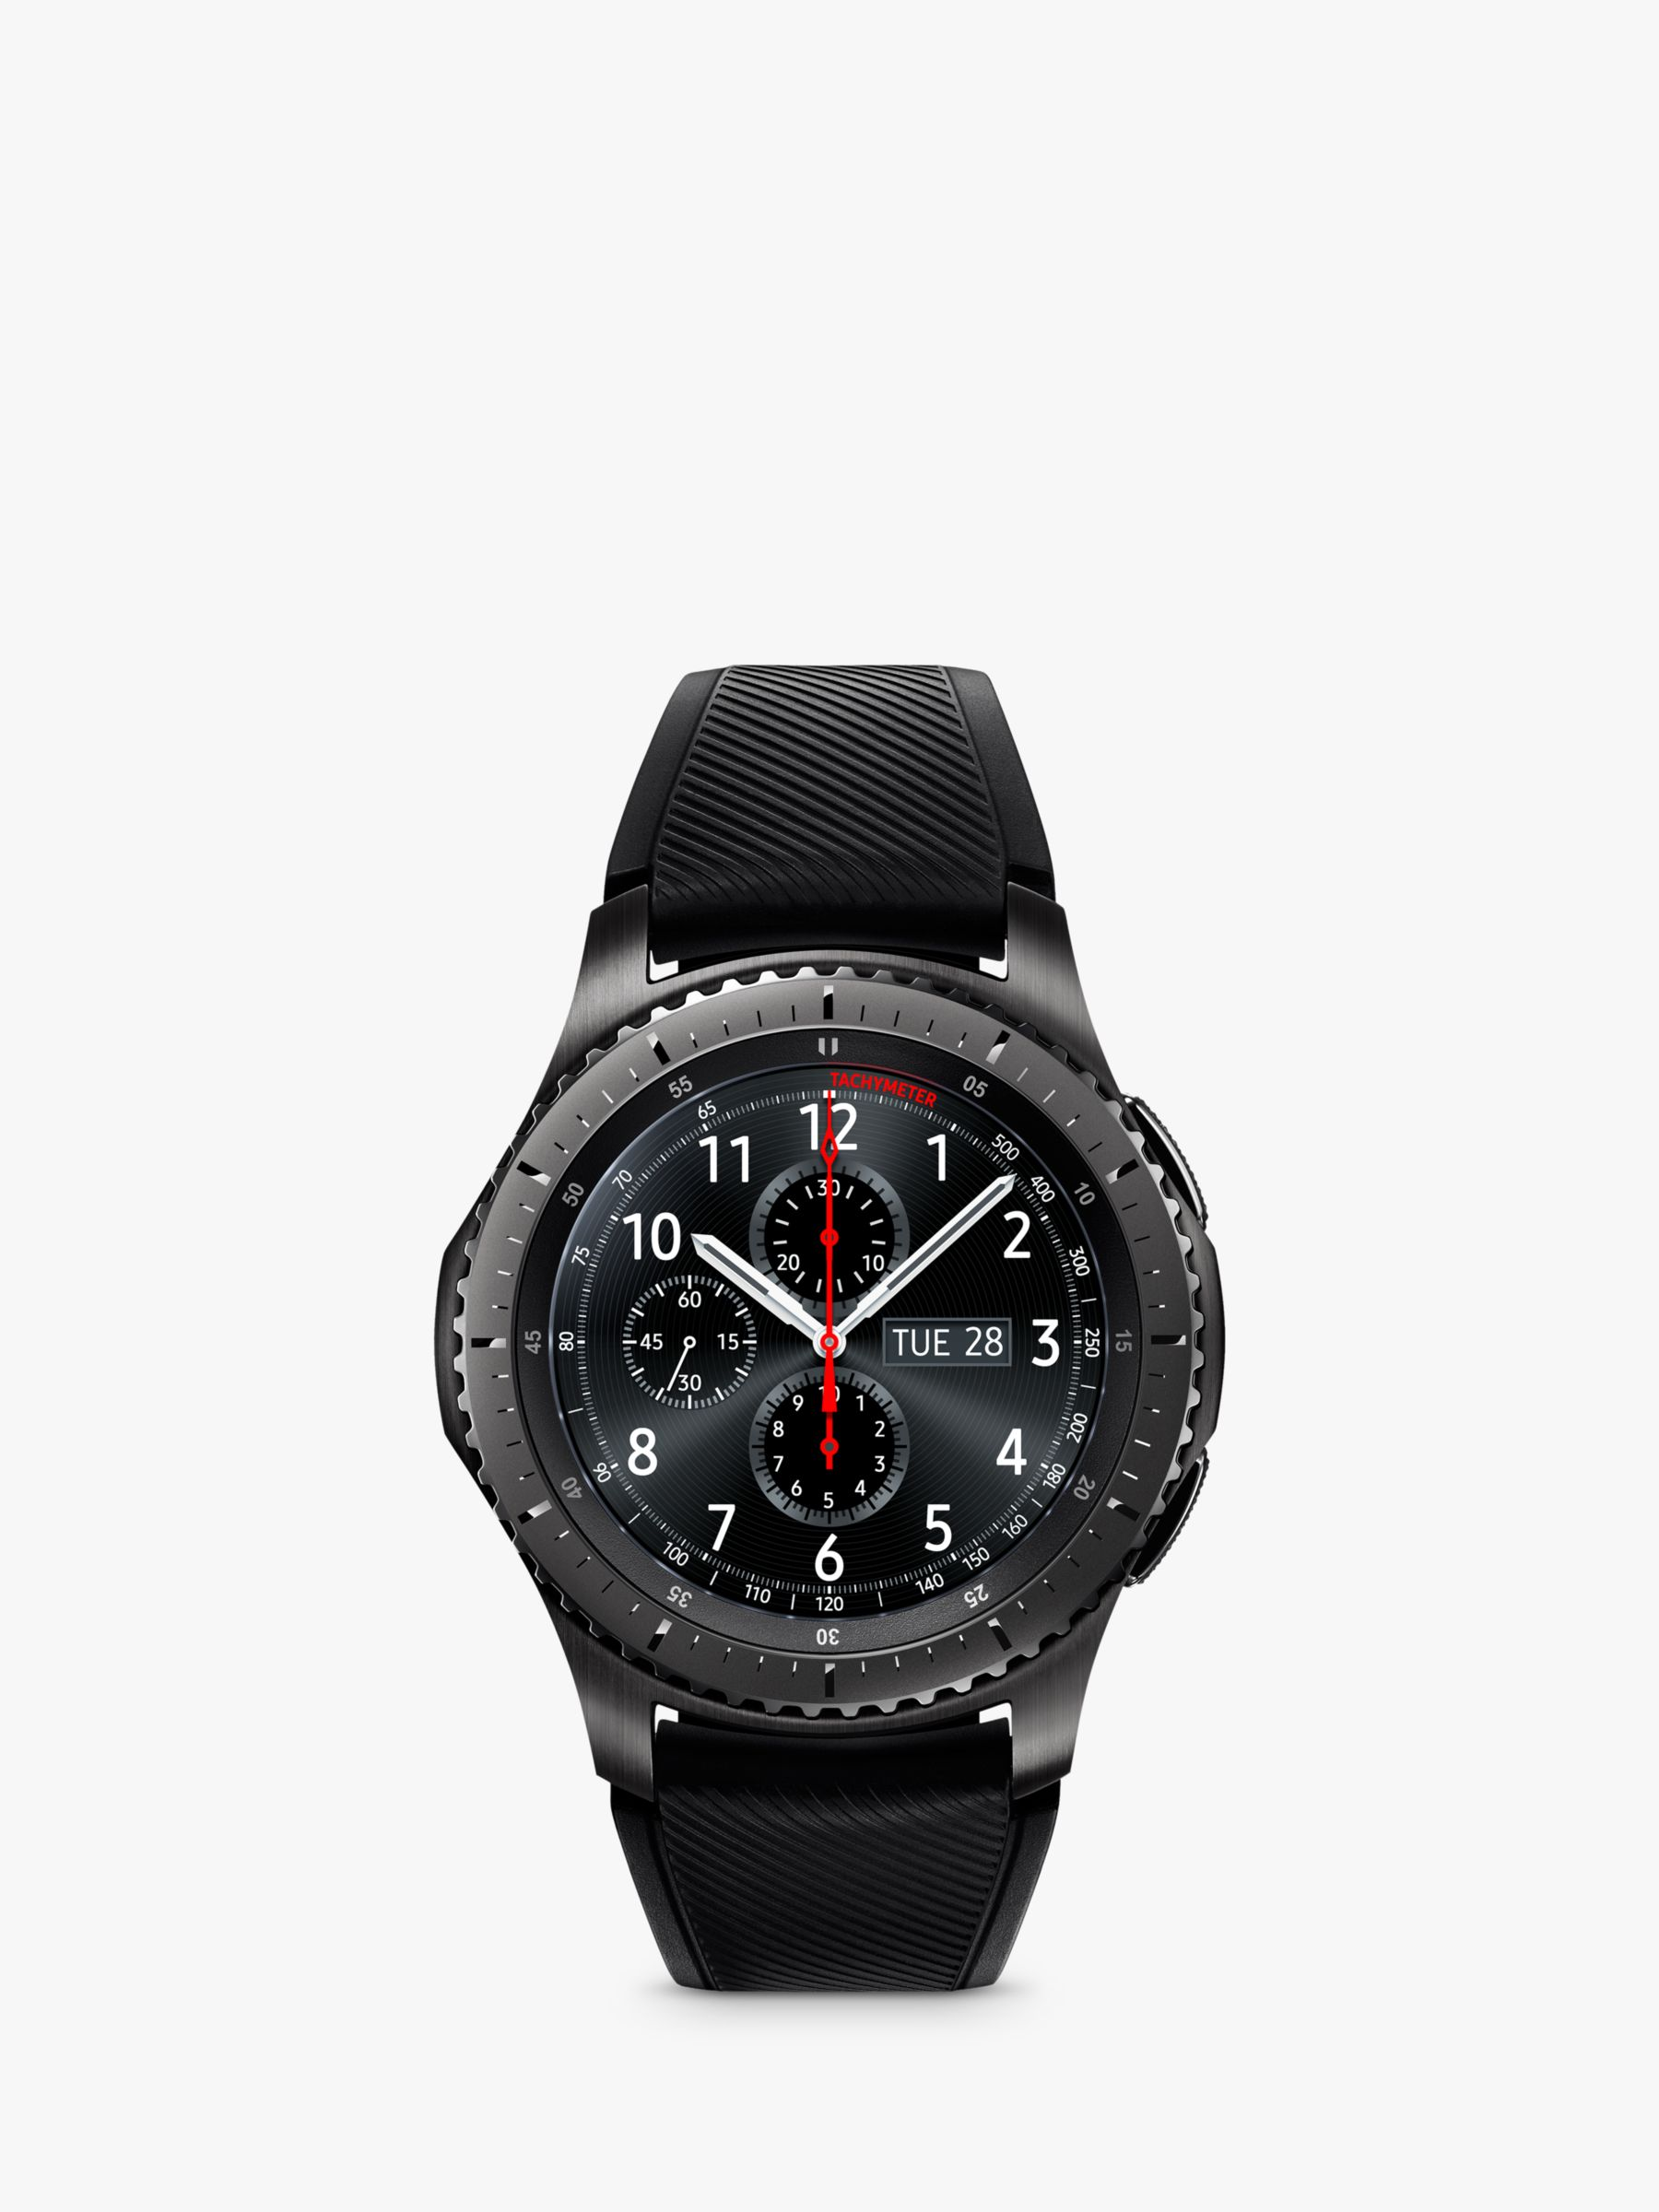 7ffa0e042c4 Samsung Gear S3 Frontier Smartwatch with Active Silicon Band